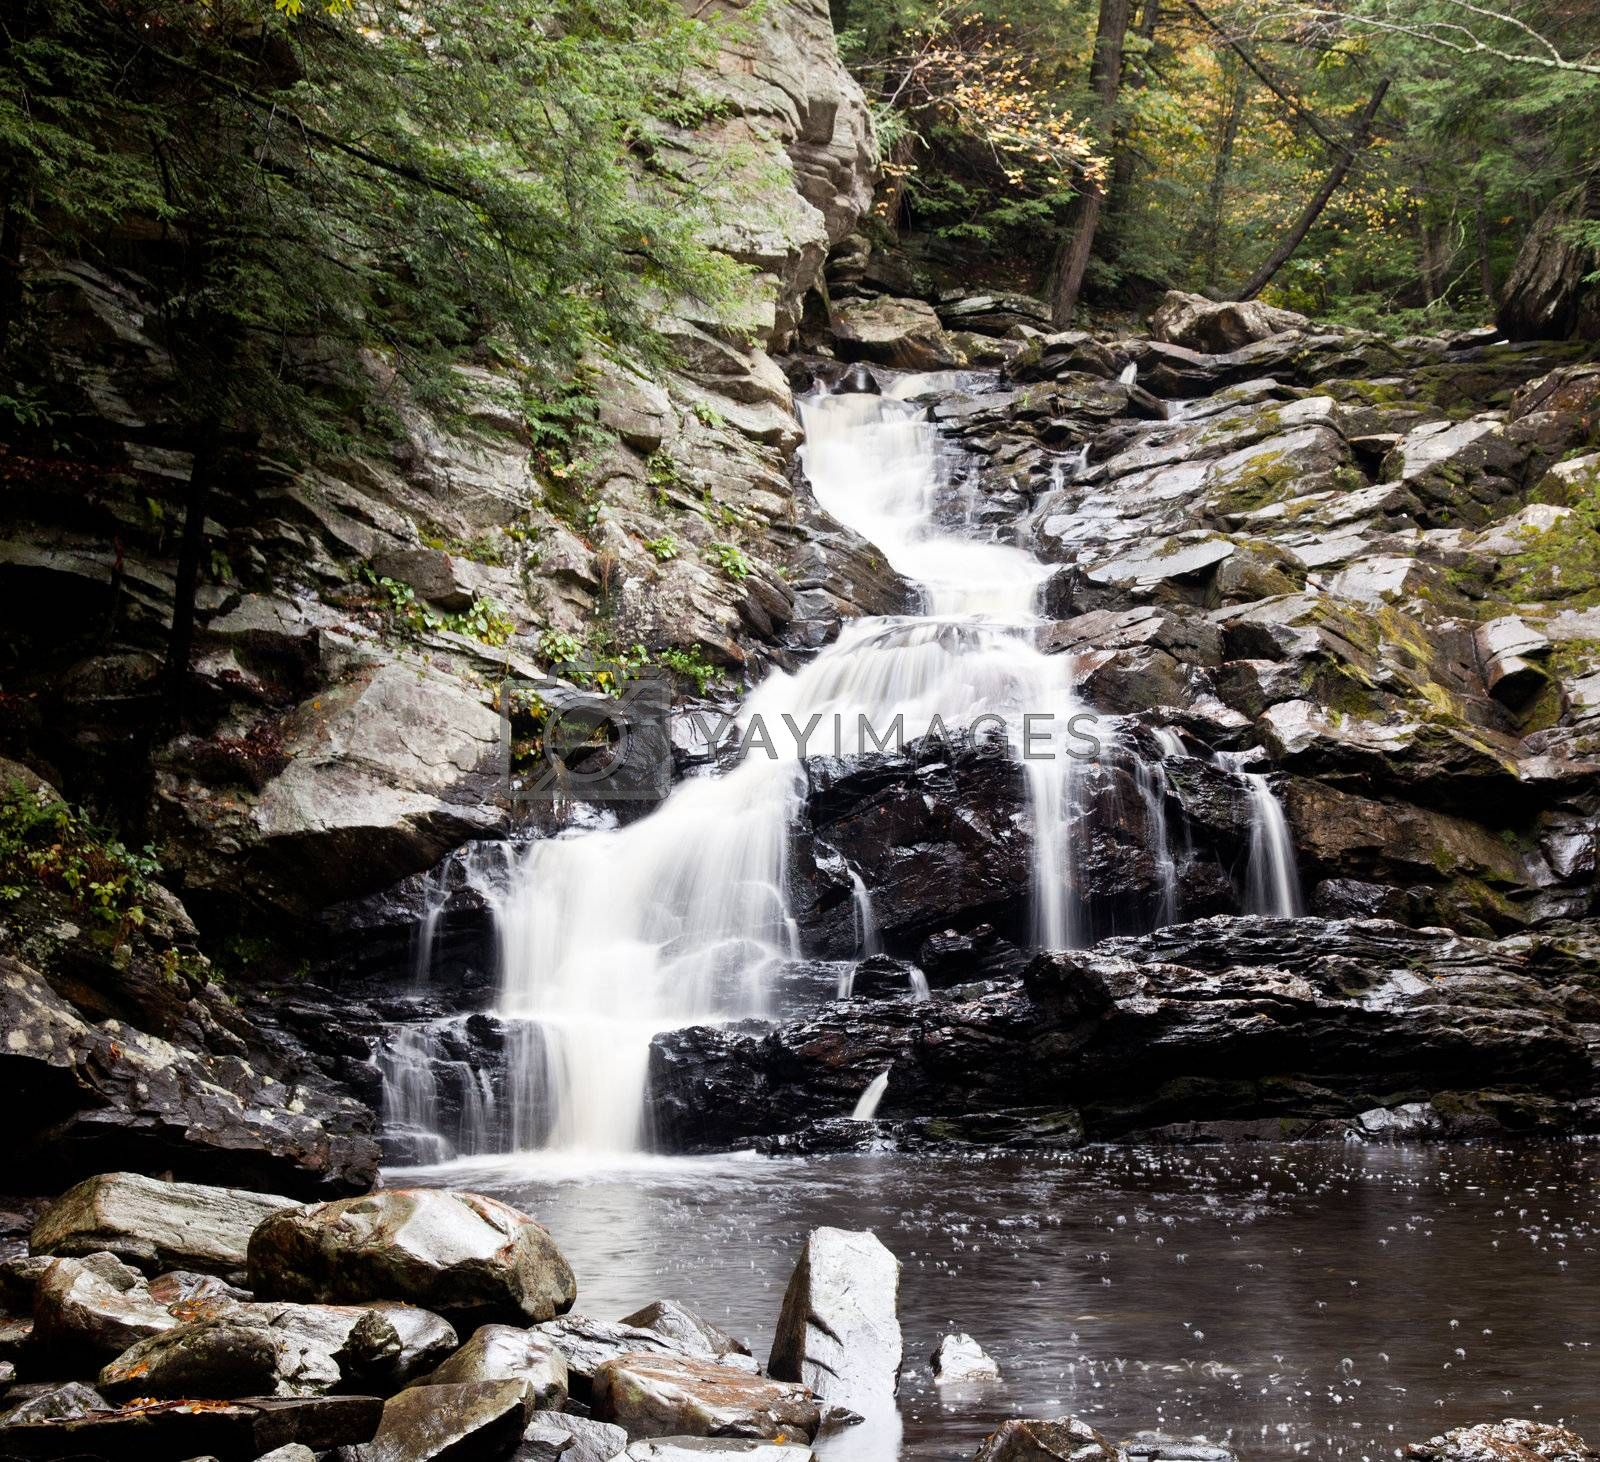 Royalty free image of Waconah falls in Berkshires by steheap